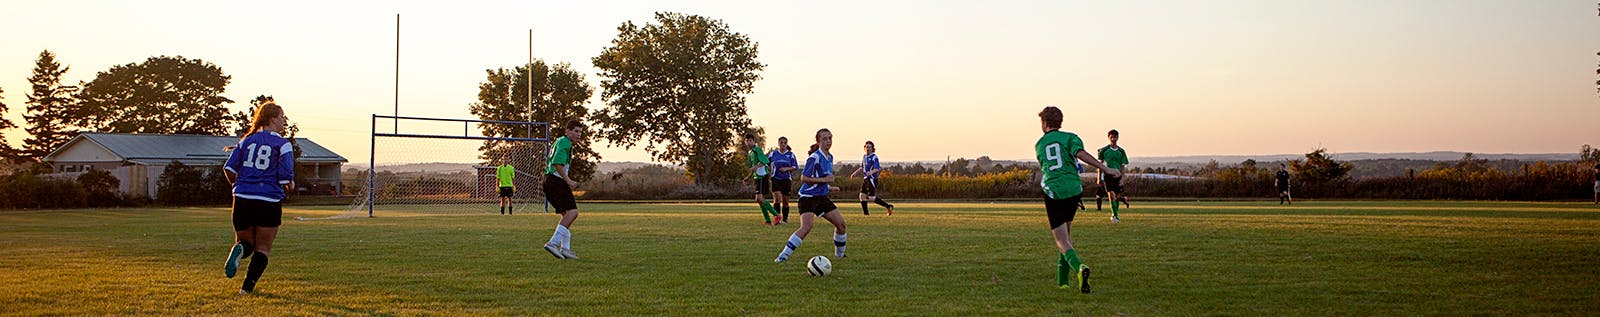 Youth play soccer on a Clarington field